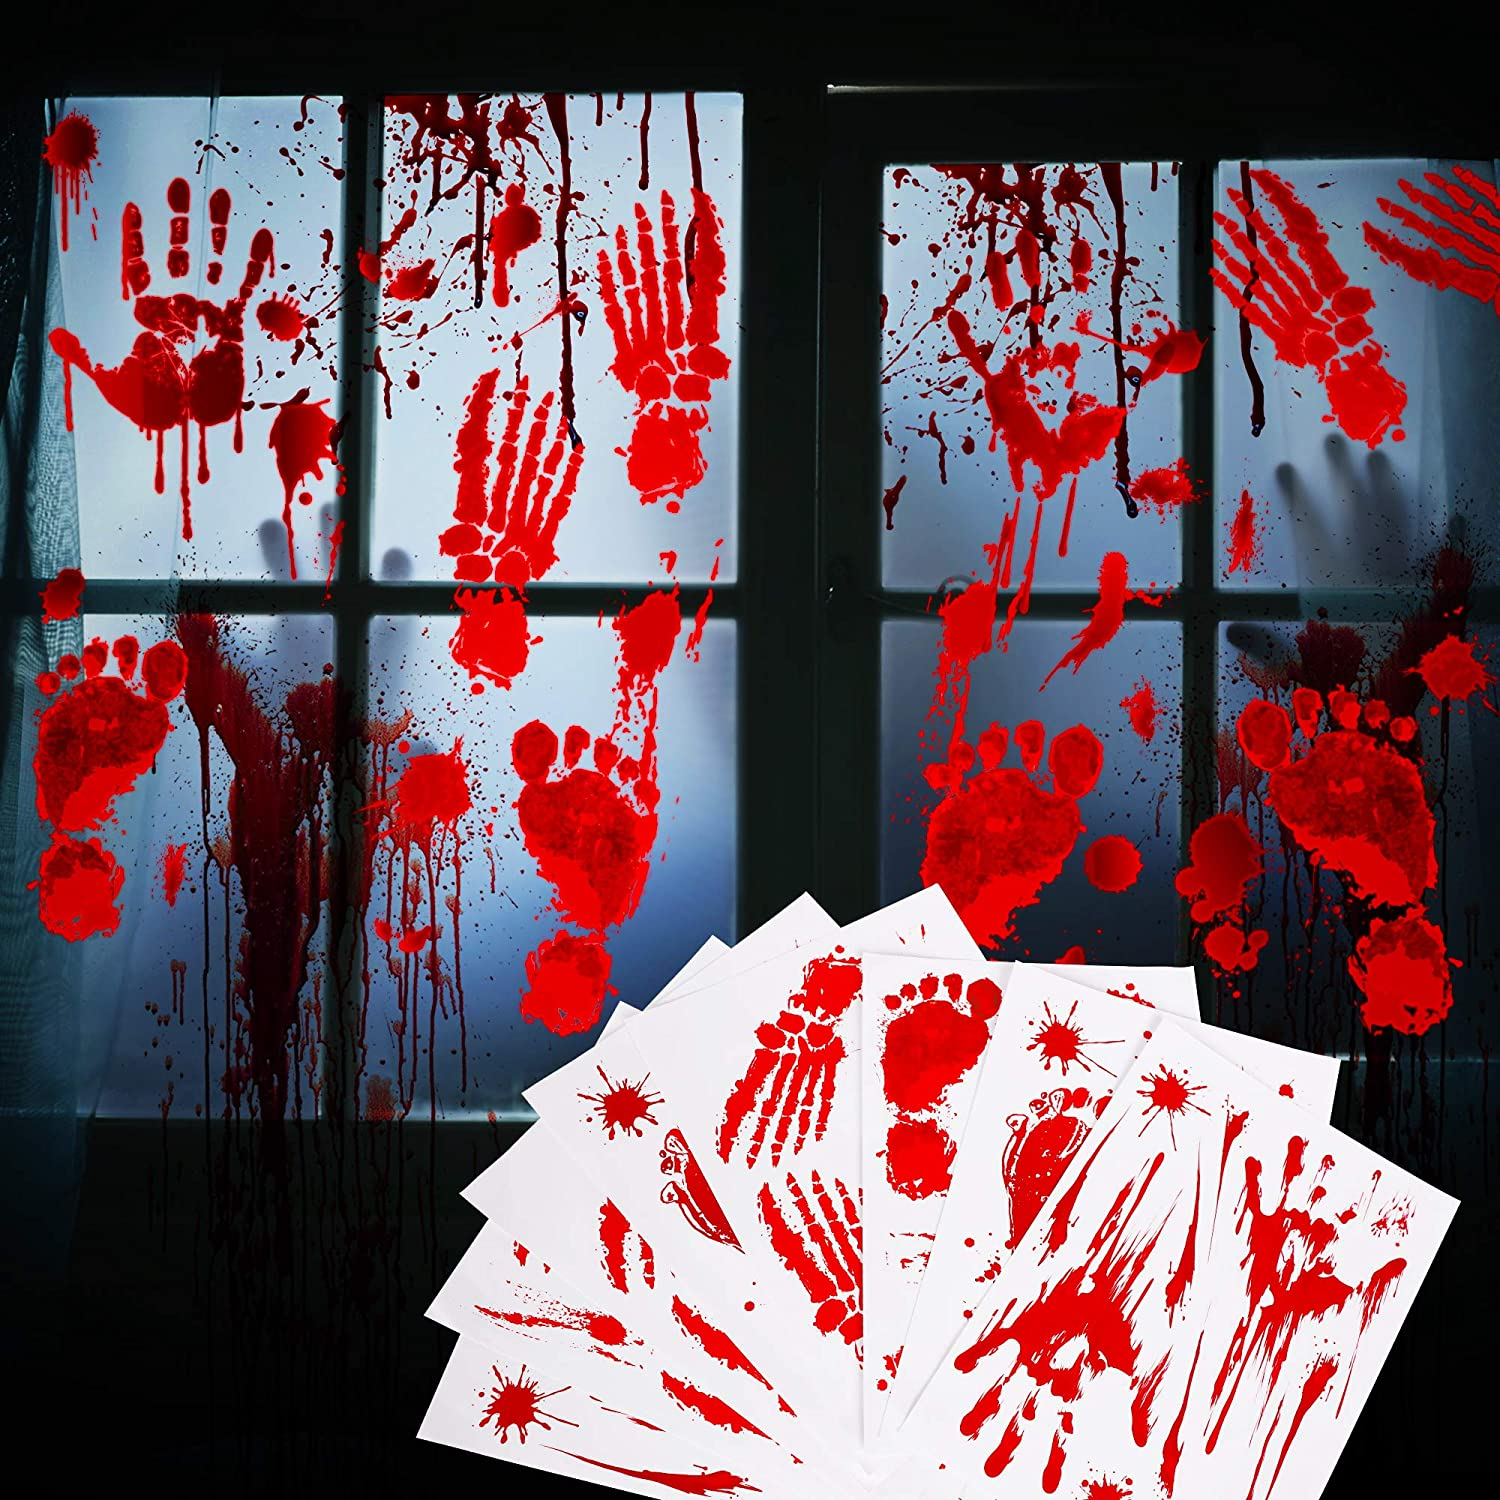 Decorlife Bloody Halloween Window Decorations Clearance, Footprint and Handprint Clings, Spooky Halloween Party Stickers, Floor Mirror Decor - 62 PCS